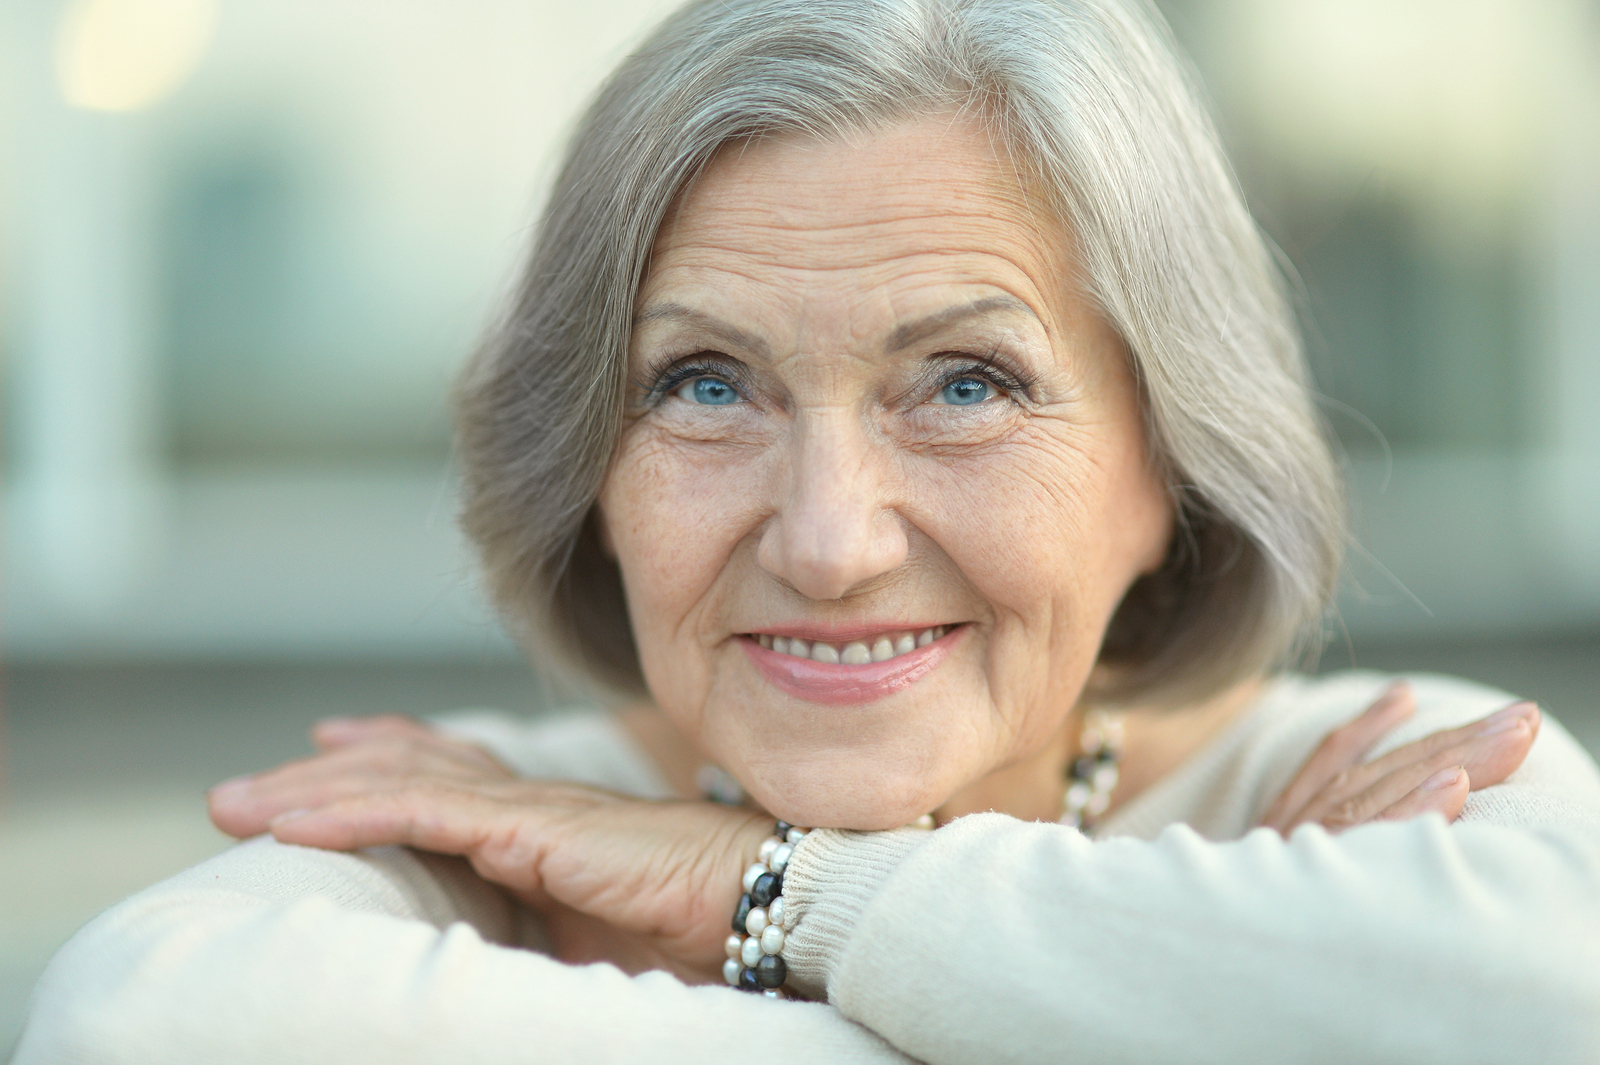 How to treat your age spots: Three treatments from the